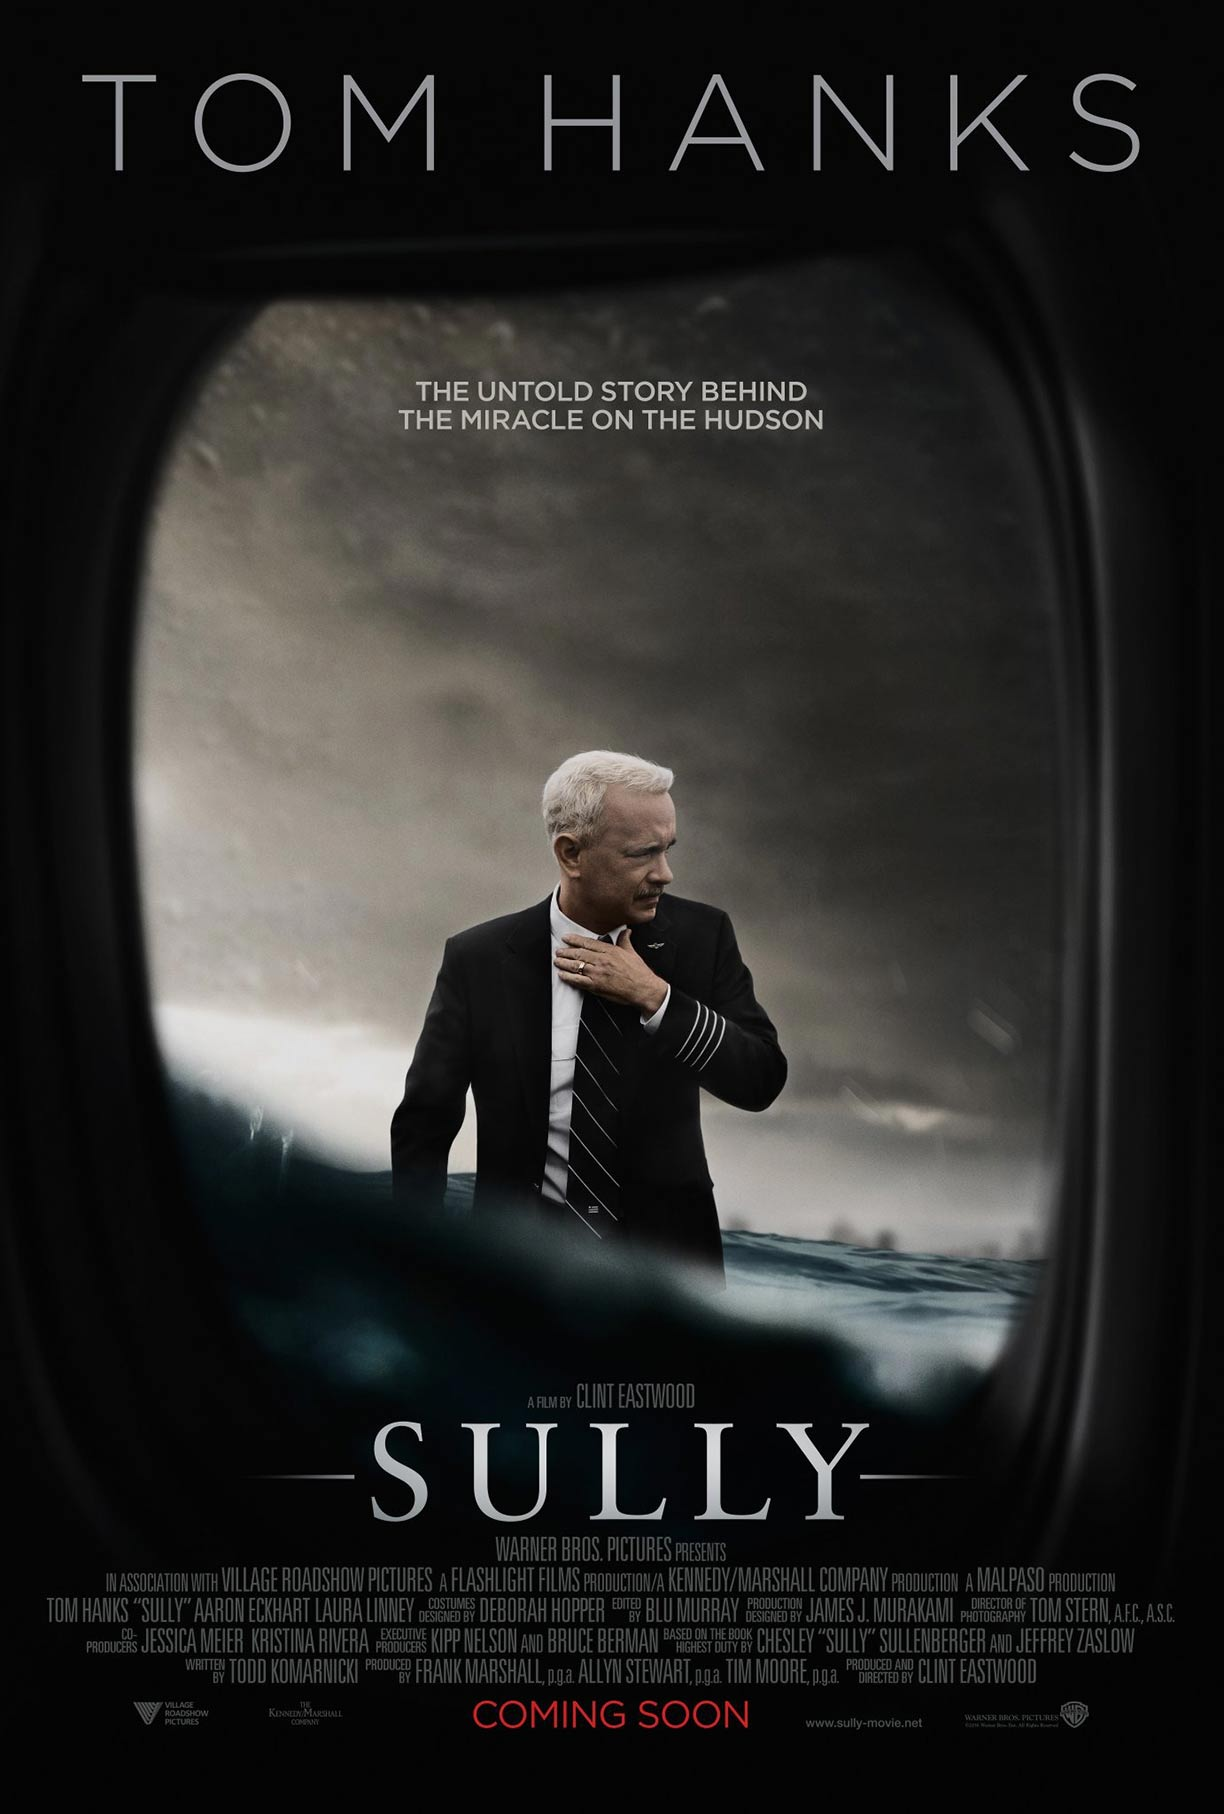 [Sully poster]